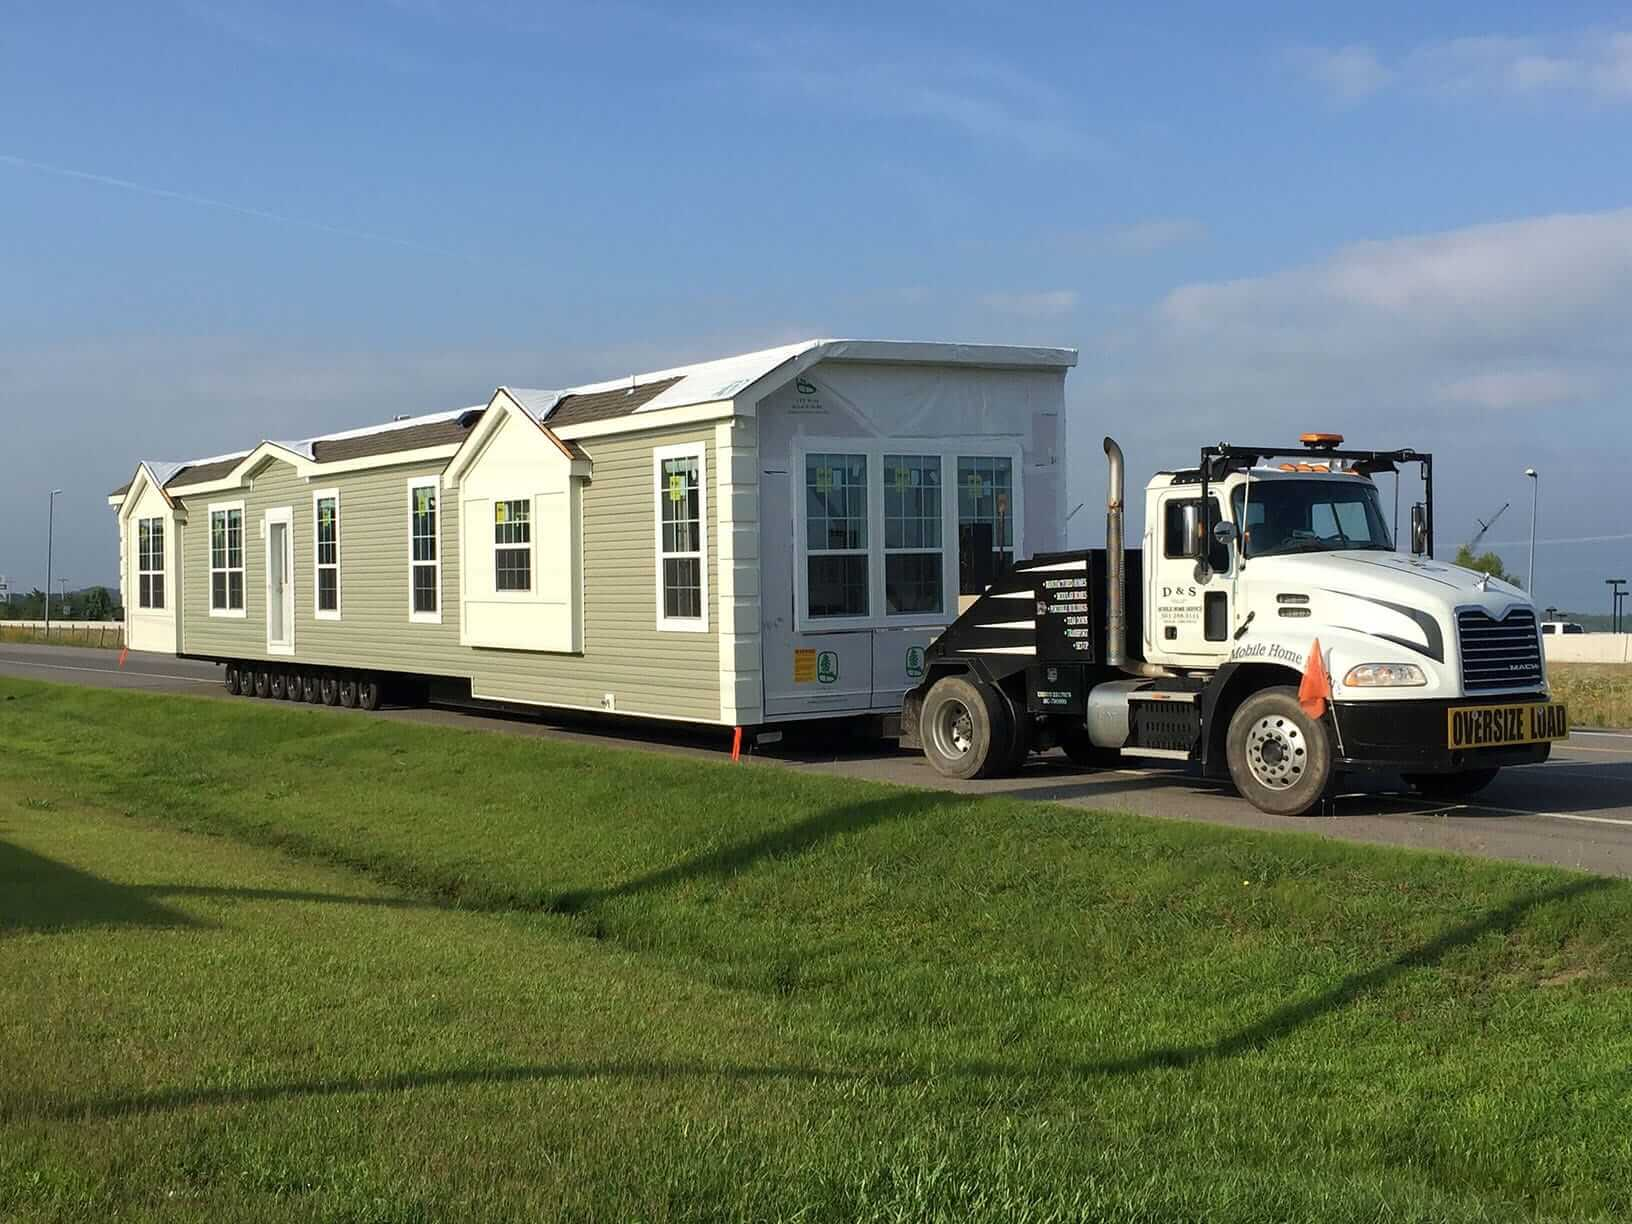 Mobile Home Movers - D & S Mobile Home Service on mobile telecommunications, mobile machinery, mobile communications, mobile security, water jetting services, mobile trucks, mobile home, mobile food, mobile advertising,